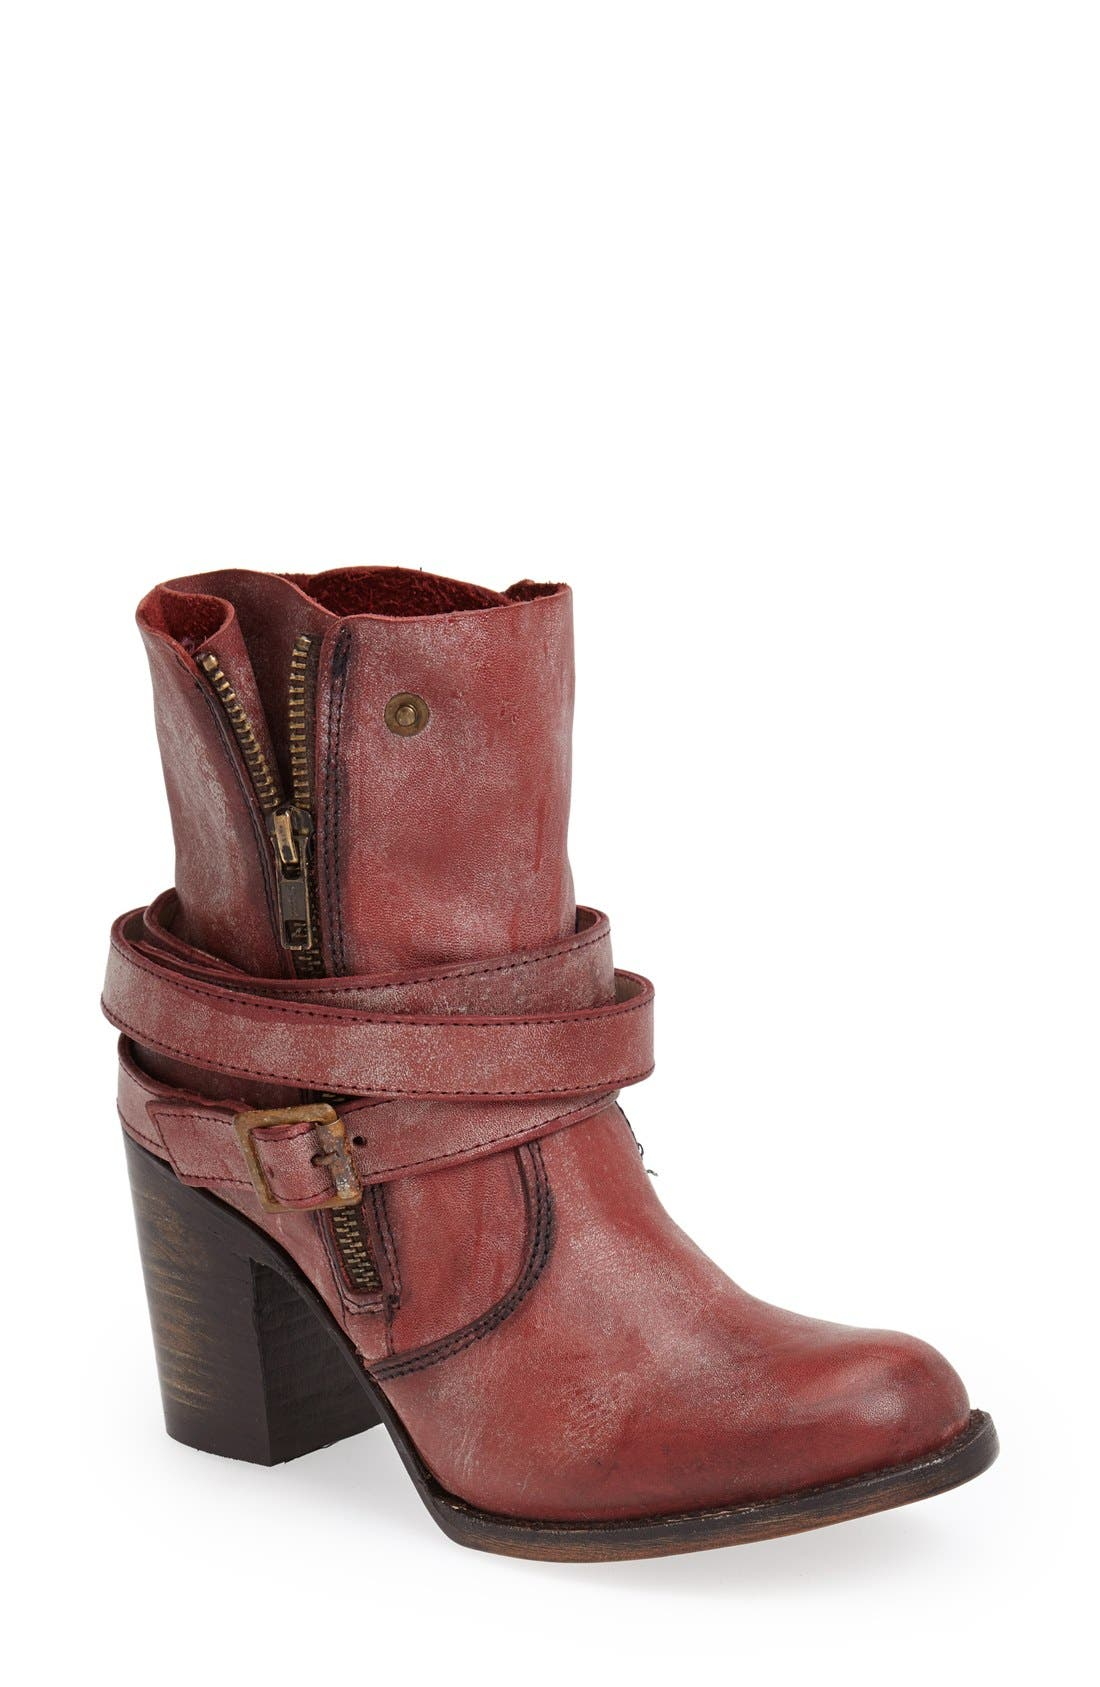 'Bama' Leather Ankle Bootie, Main, color, 600